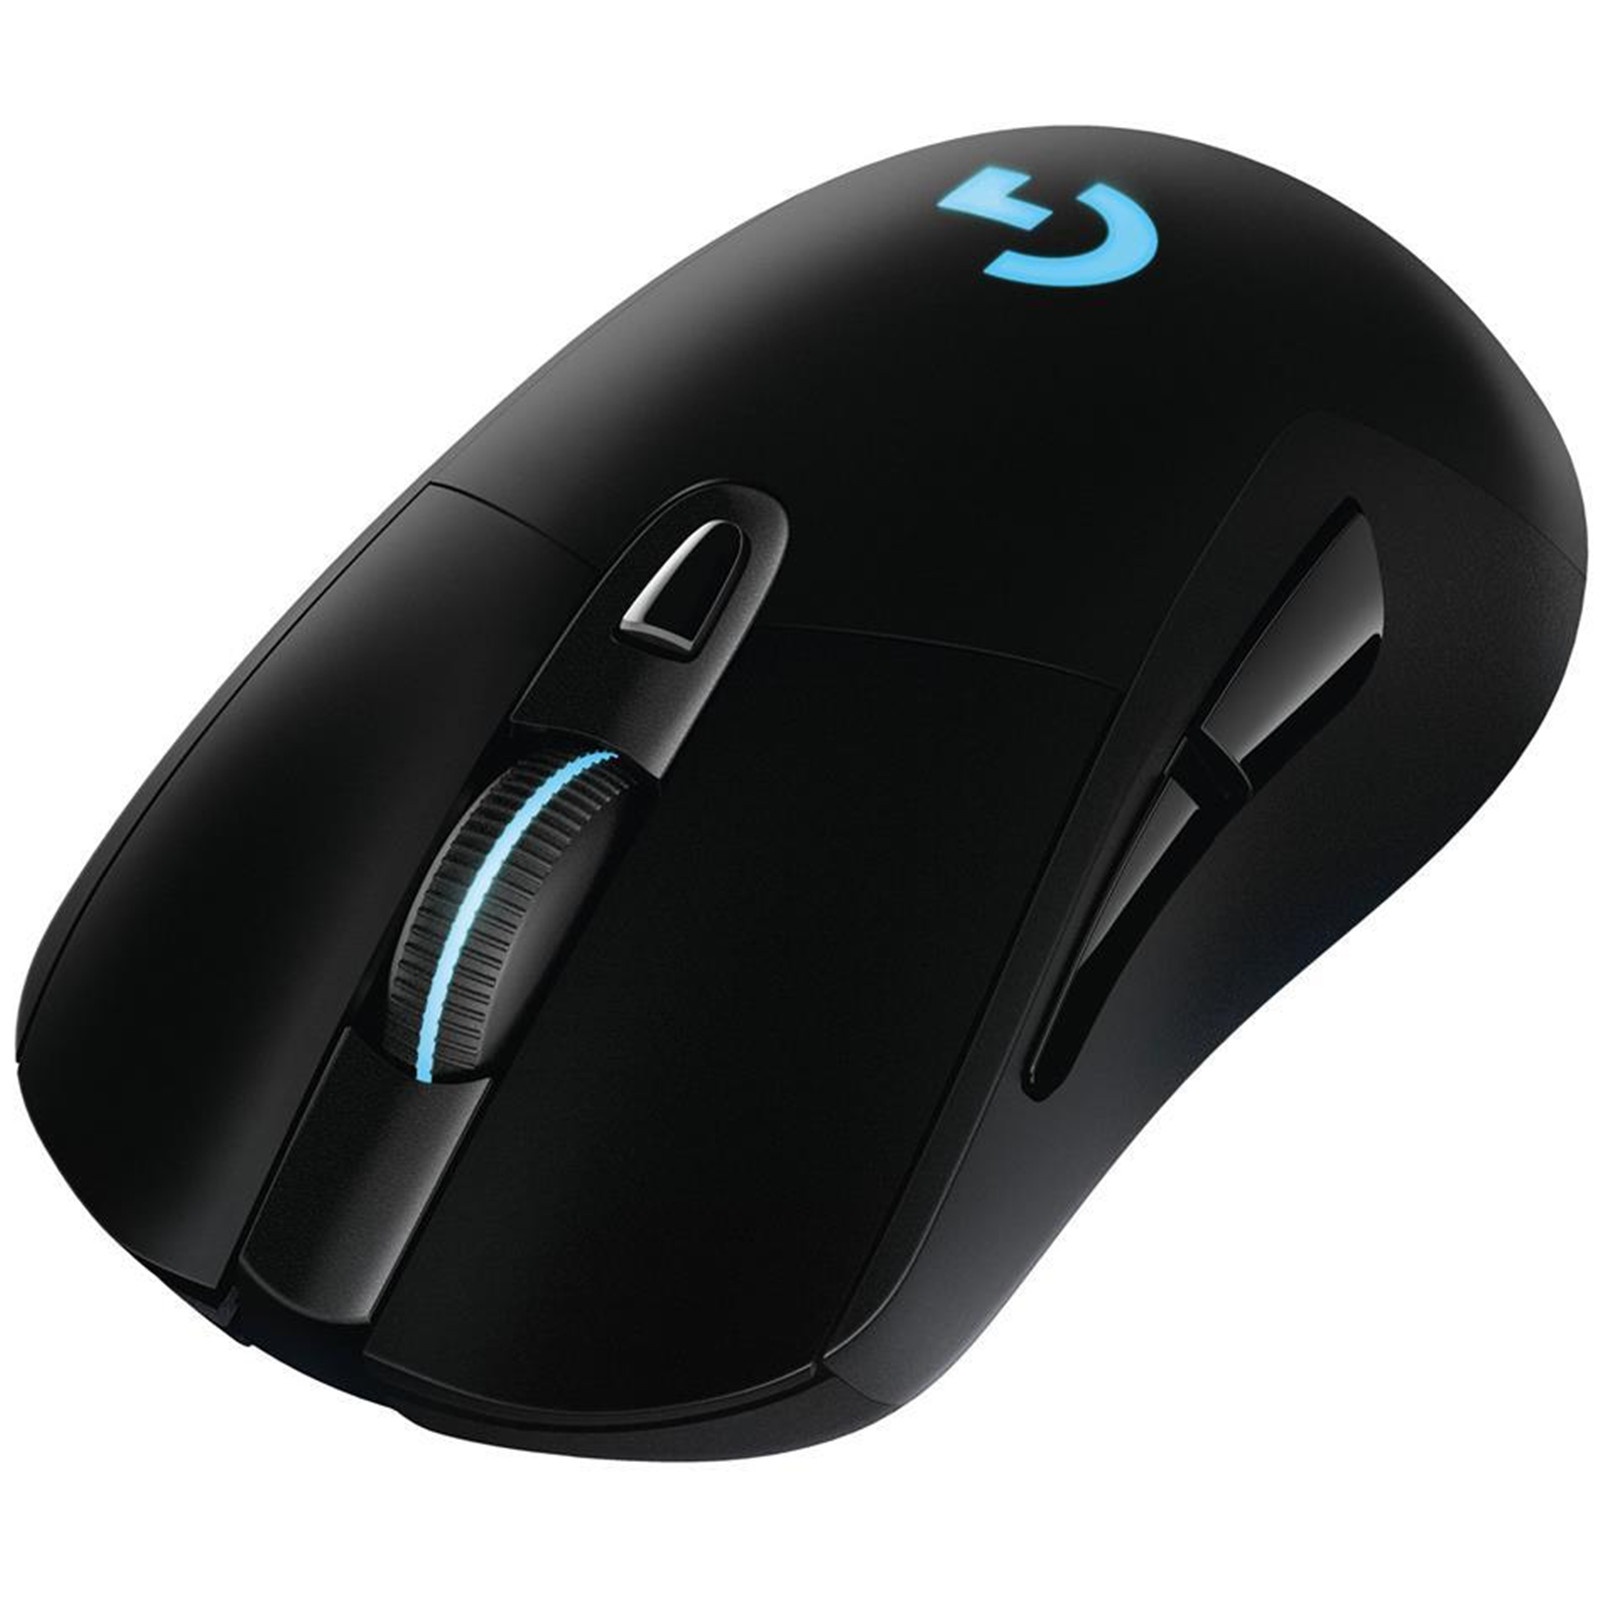 Buy the Logitech G703 RGB Lightspeed Wireless Gaming Mouse